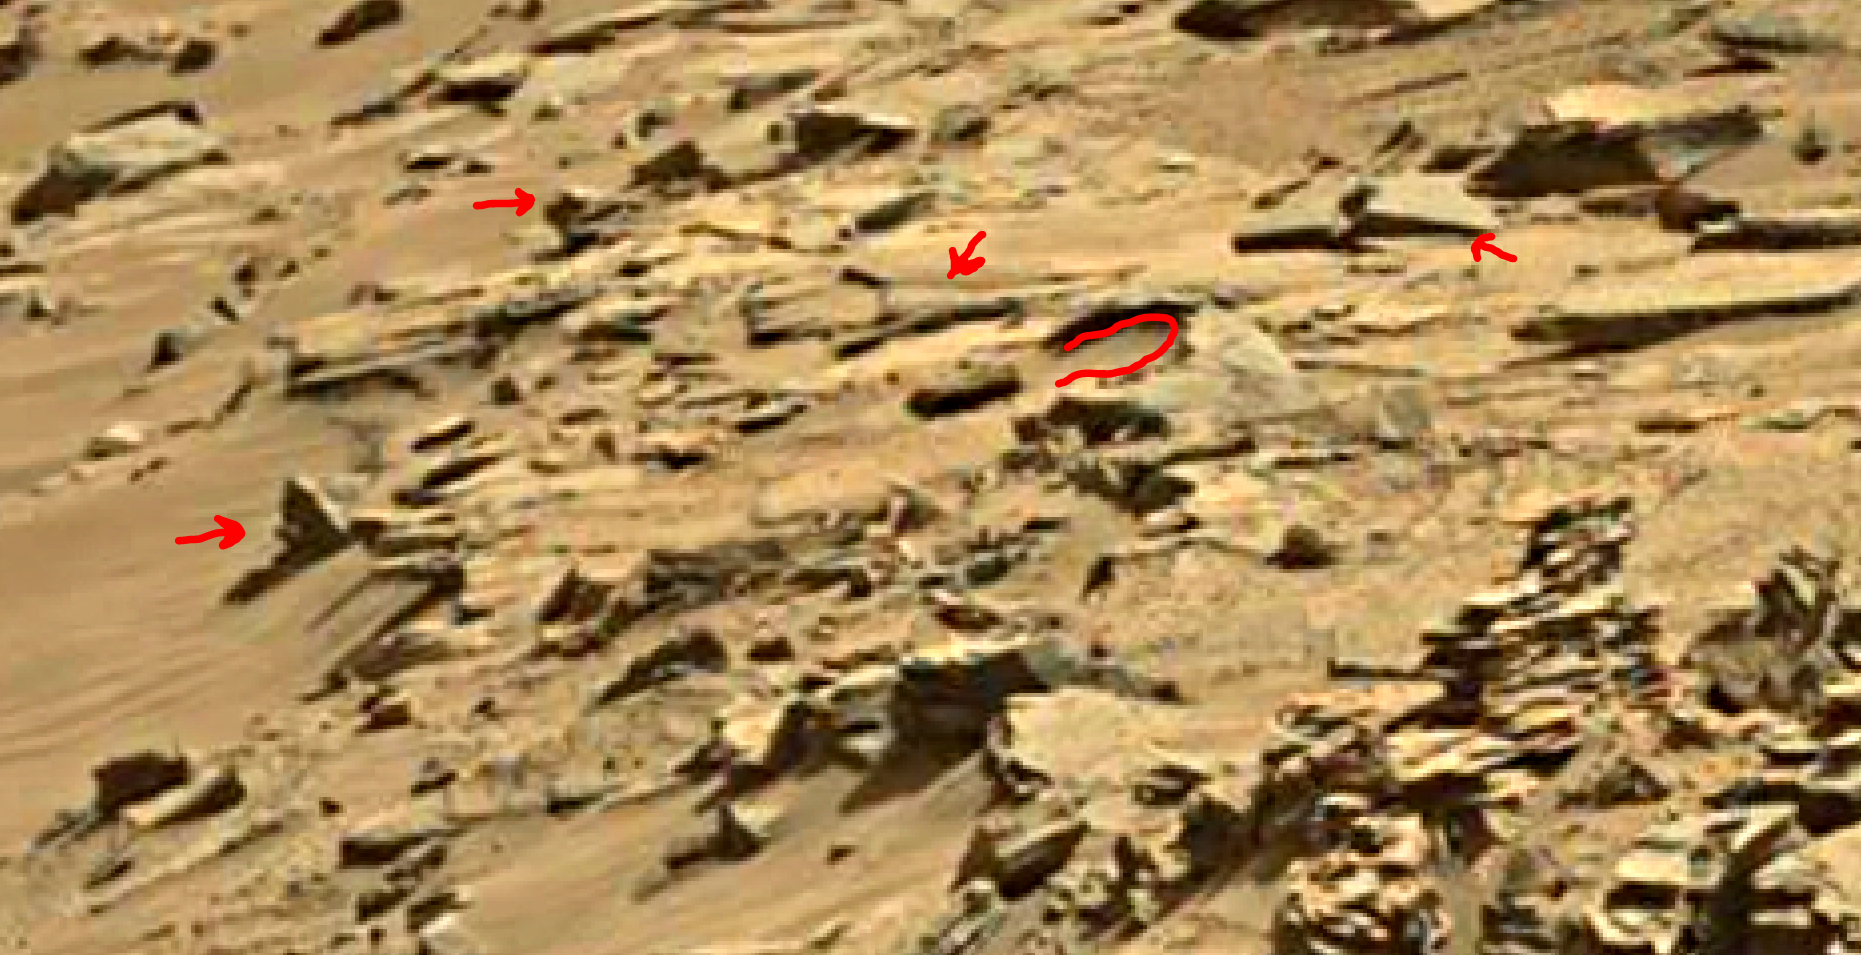 mars sol 1346 anomaly-artifacts 22 was life on mars